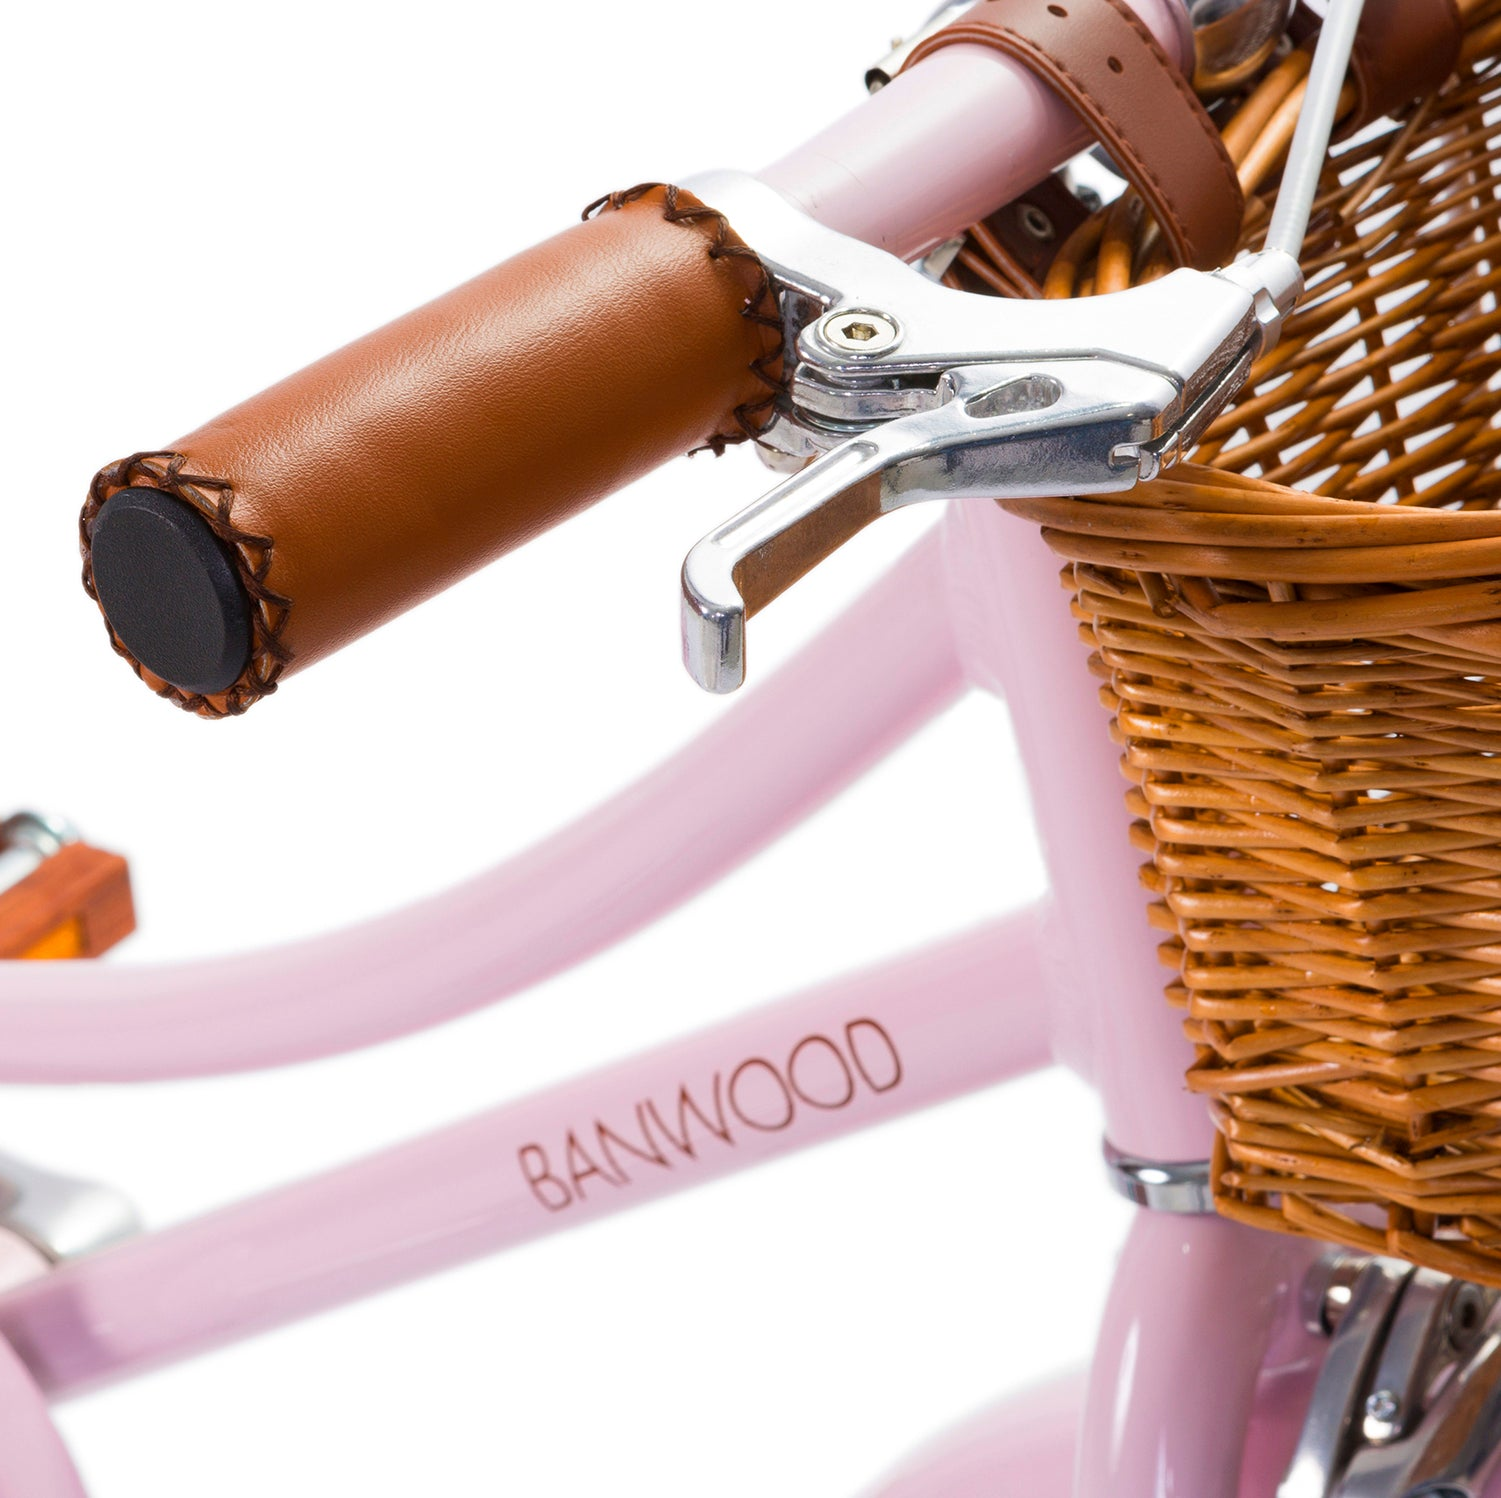 banwood pedal bike handles